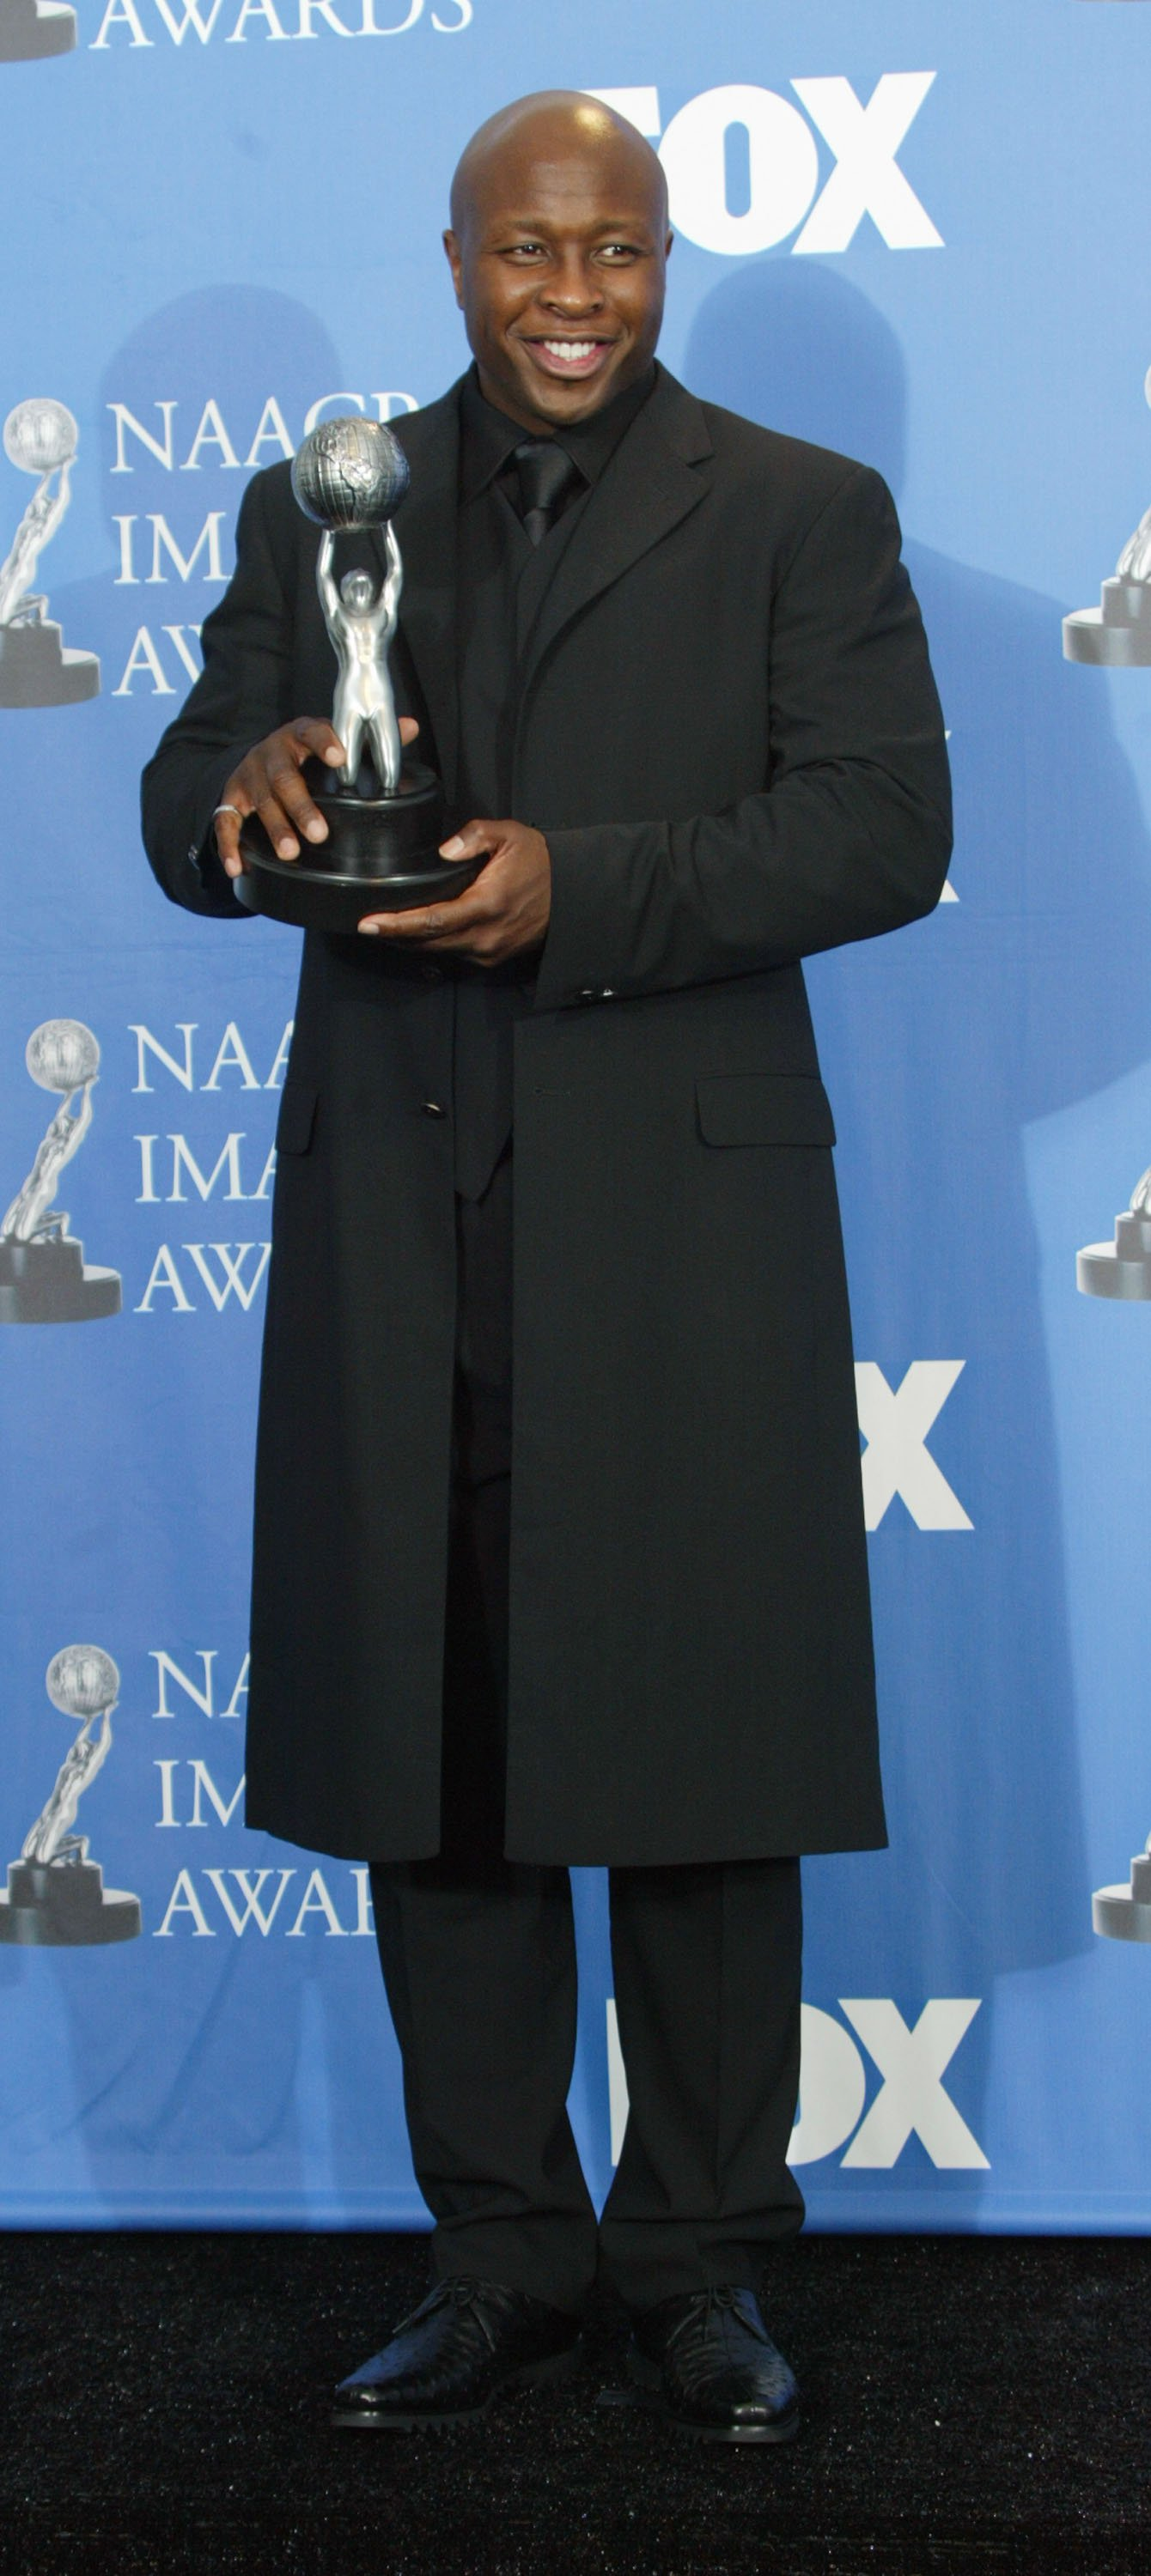 Steve Harris poses backstage after winning Best Actor in a Drama Series at the 35th Annual NAACP Image Awards held at the Universal Amphitheatre, March 6, 2004 in Hollywood California. | Source: Getty